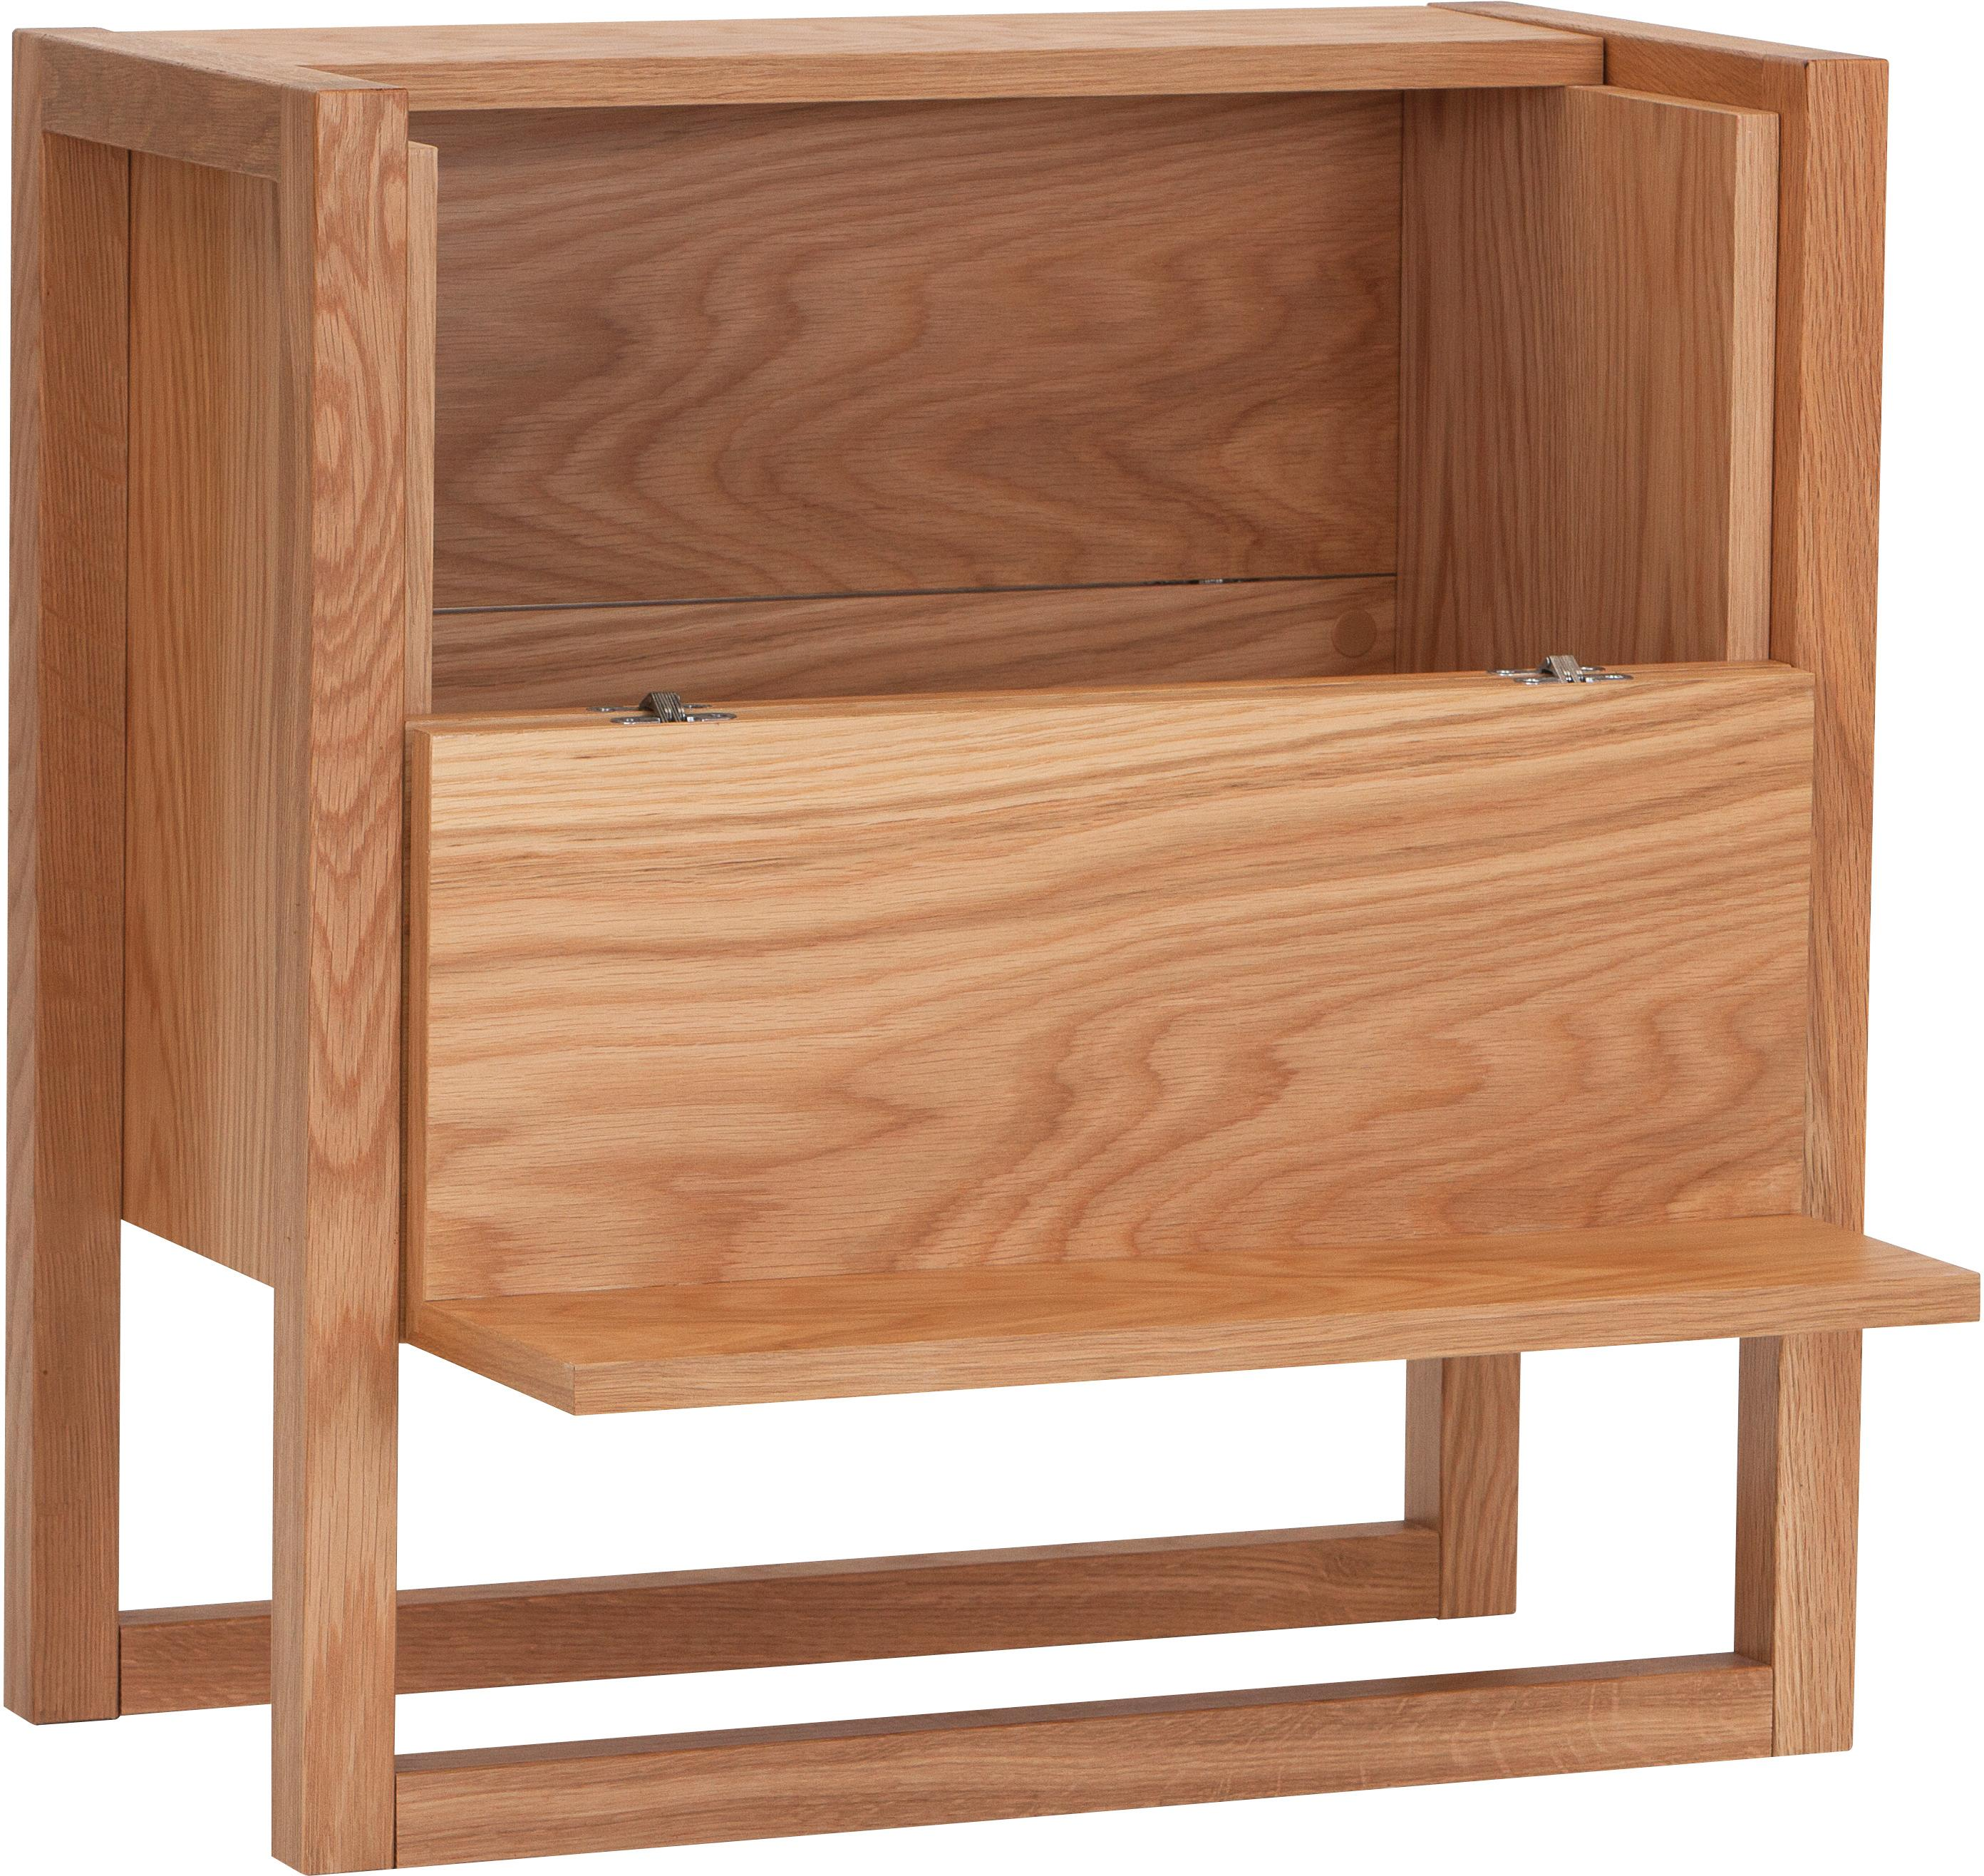 Mueble bar NewEst, Estructura: tablero de fibras de dens, Roble, An 59 x Al 60 cm